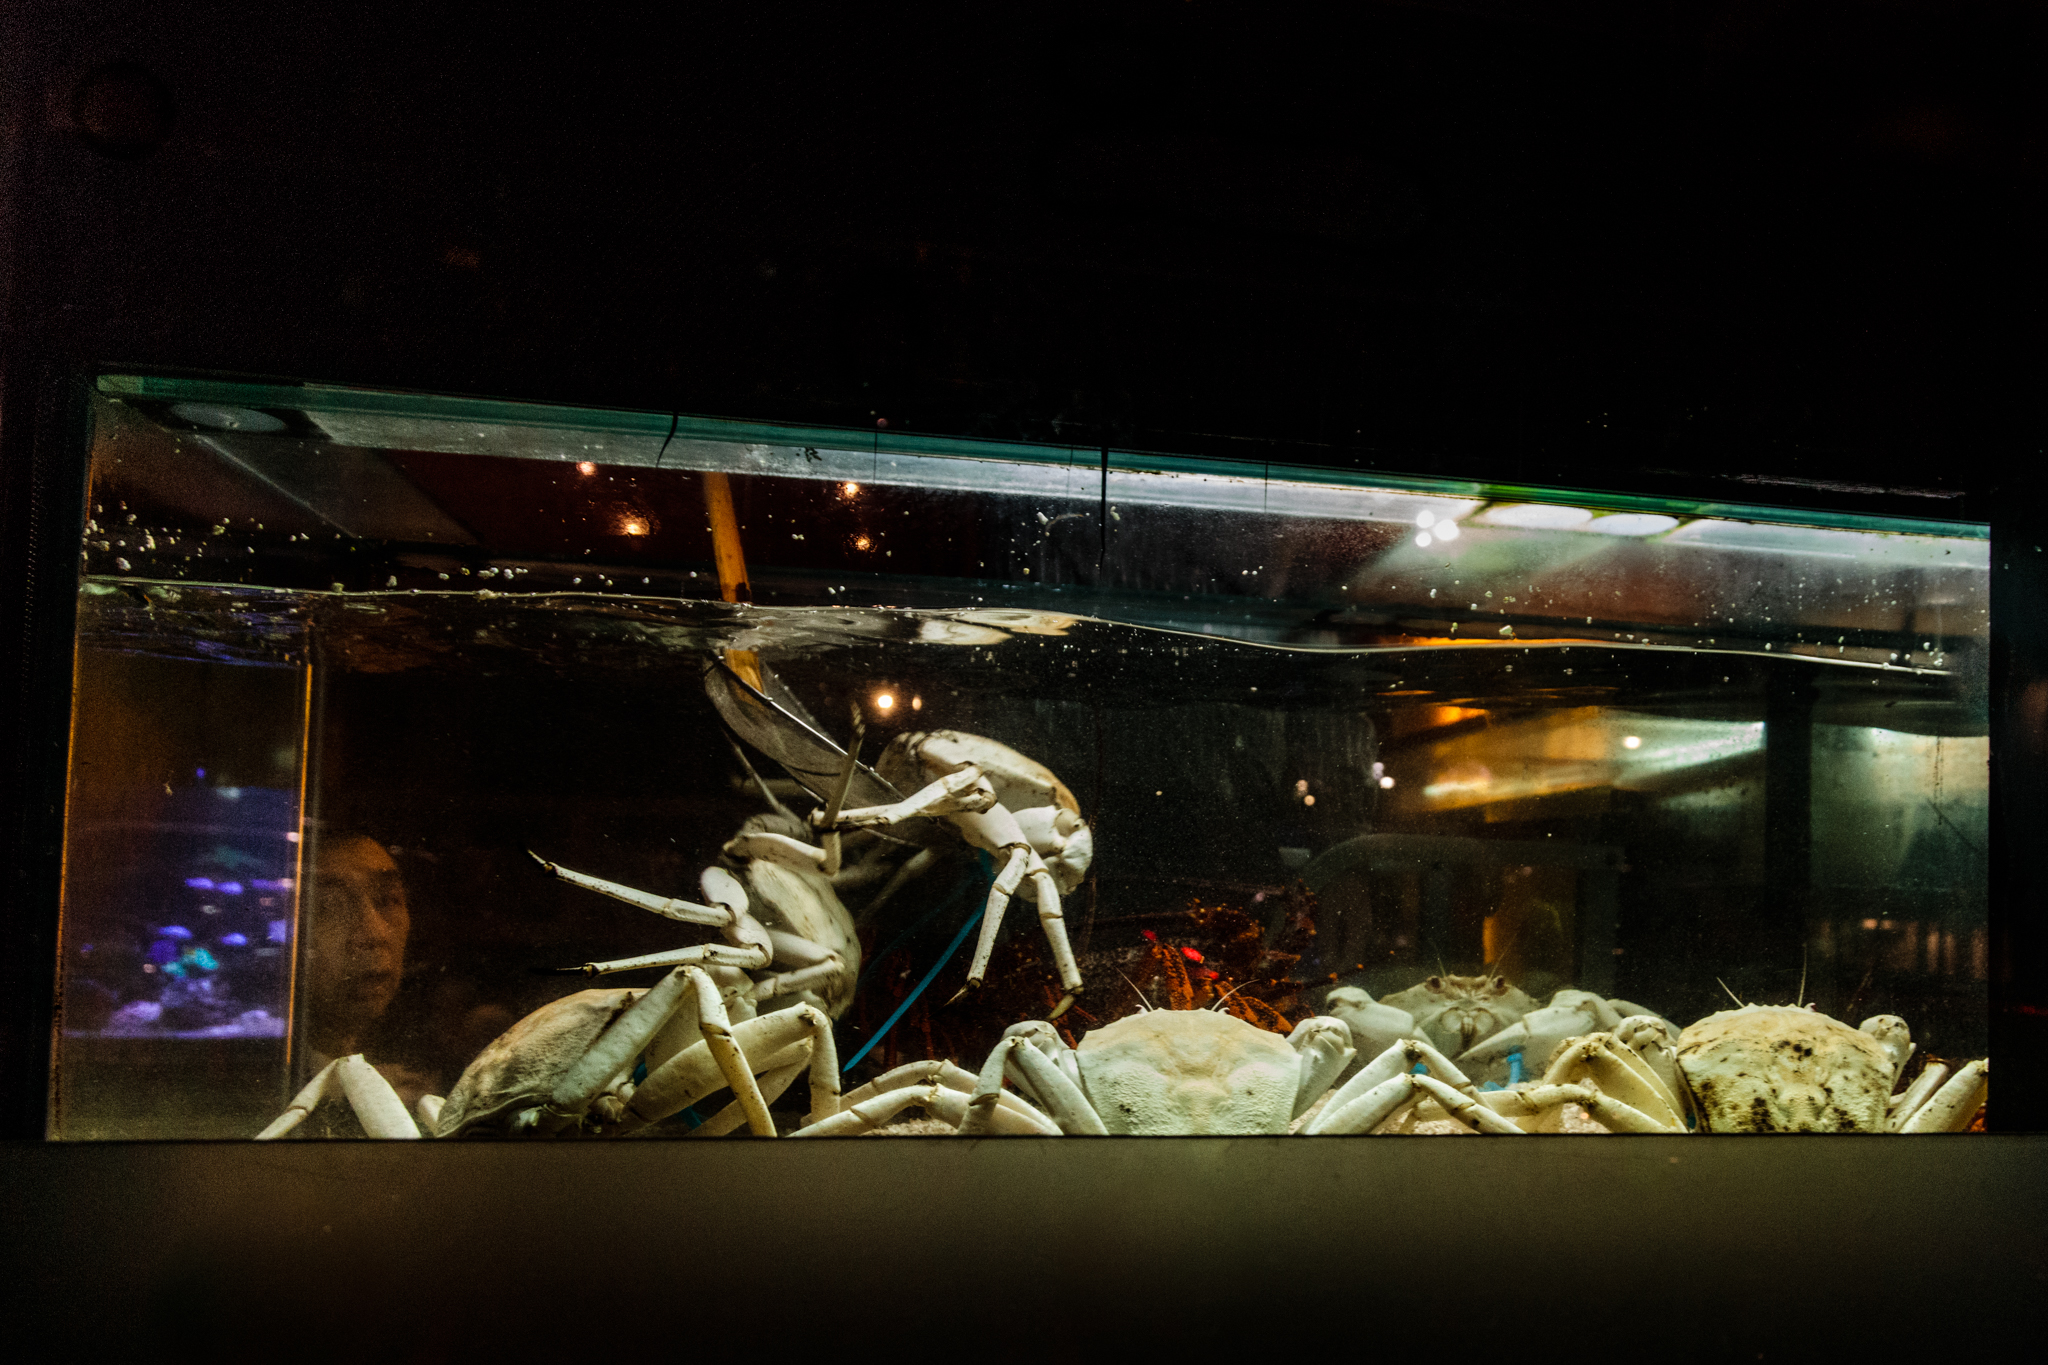 live-lobsters-for-sale.jpg